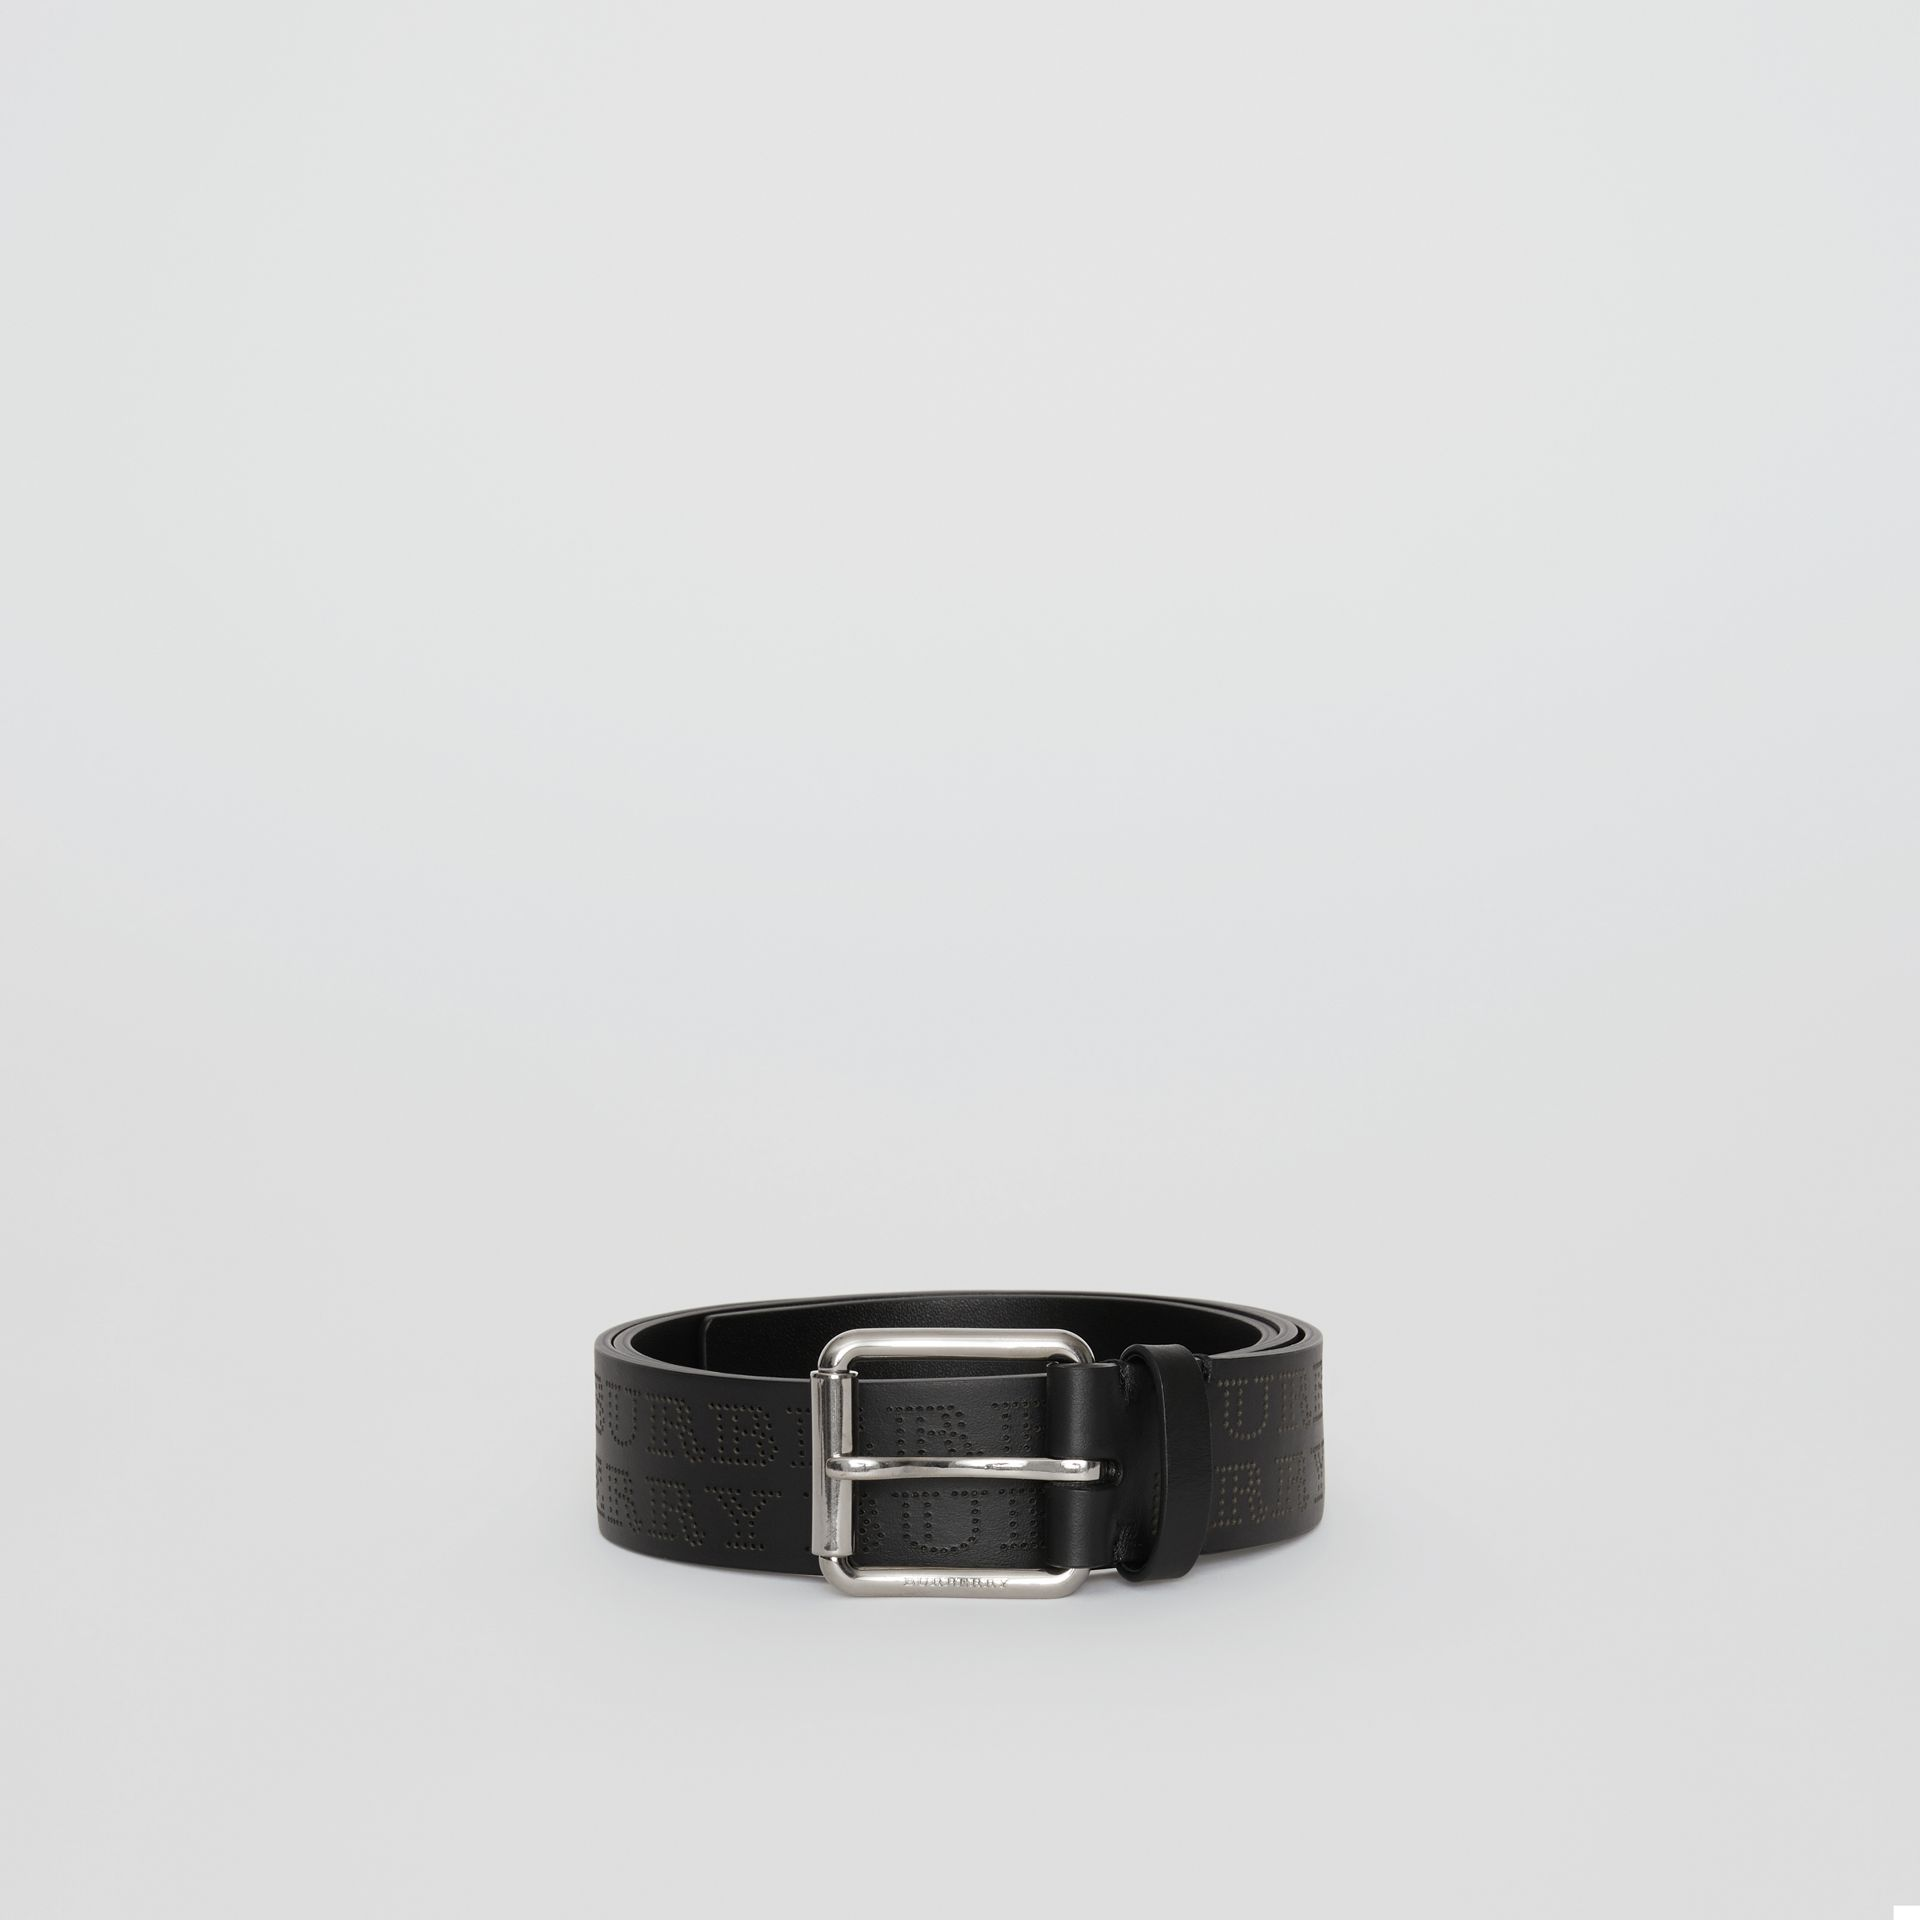 Perforated Logo Leather Belt in Black - Men | Burberry - gallery image 3